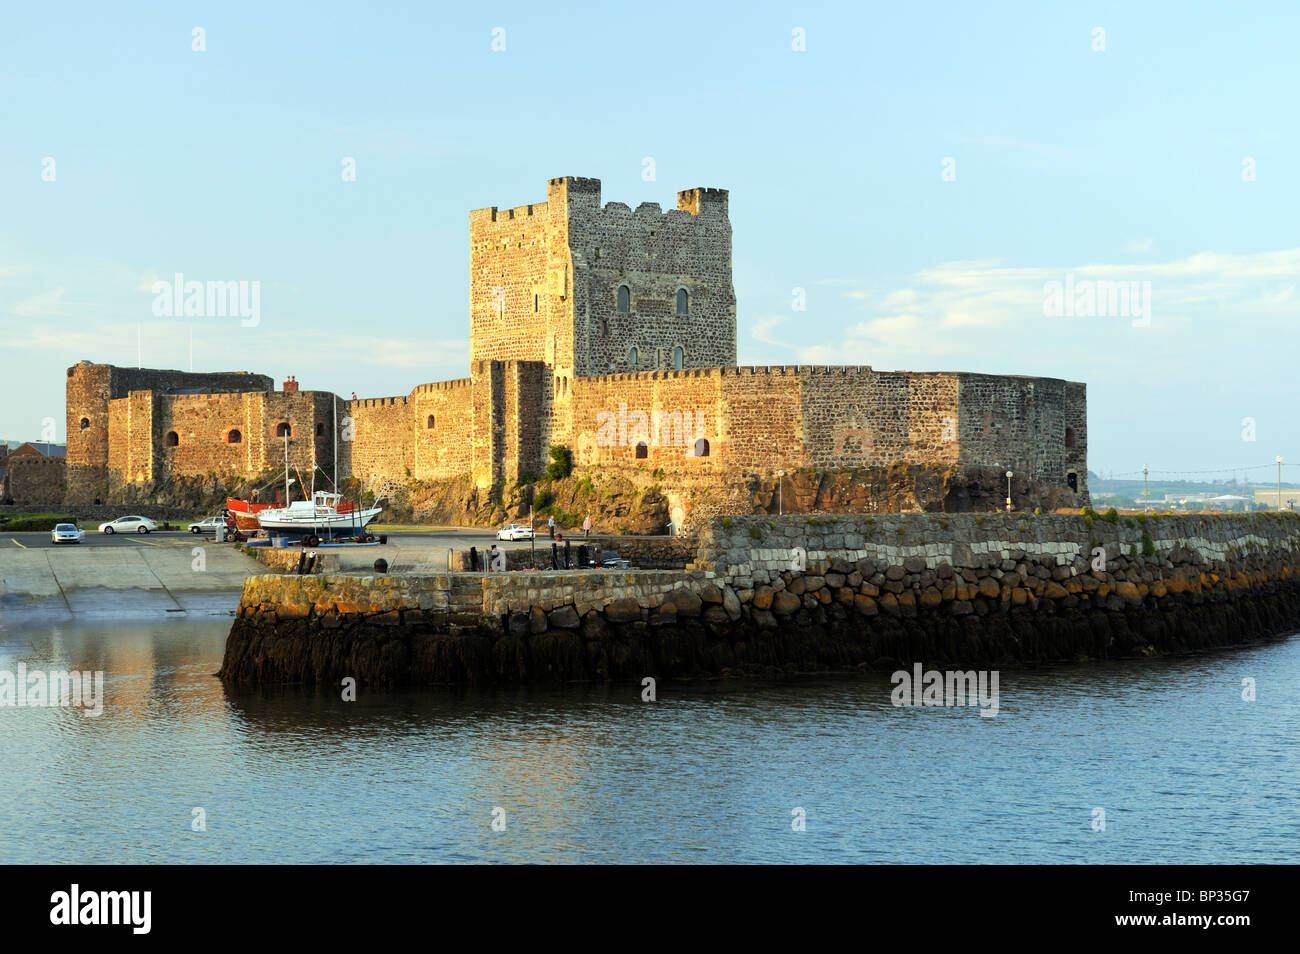 Wonderful The Tower Of Antrim Castle County Antrim Northern Ireland Stock  With Entrancing  Carrickfergus Castle On The North Antrim Coast Road On Shore Of Belfast  Lough Norman Period With Easy On The Eye Sleepers In Gardens Also Evergreen Garden Trees In Addition  Grosvenor Gardens And Morreys Garden Centre As Well As The Chieftain Welwyn Garden City Additionally Raised Garden Bed With Bottom From Alamycom With   Entrancing The Tower Of Antrim Castle County Antrim Northern Ireland Stock  With Easy On The Eye  Carrickfergus Castle On The North Antrim Coast Road On Shore Of Belfast  Lough Norman Period And Wonderful Sleepers In Gardens Also Evergreen Garden Trees In Addition  Grosvenor Gardens From Alamycom